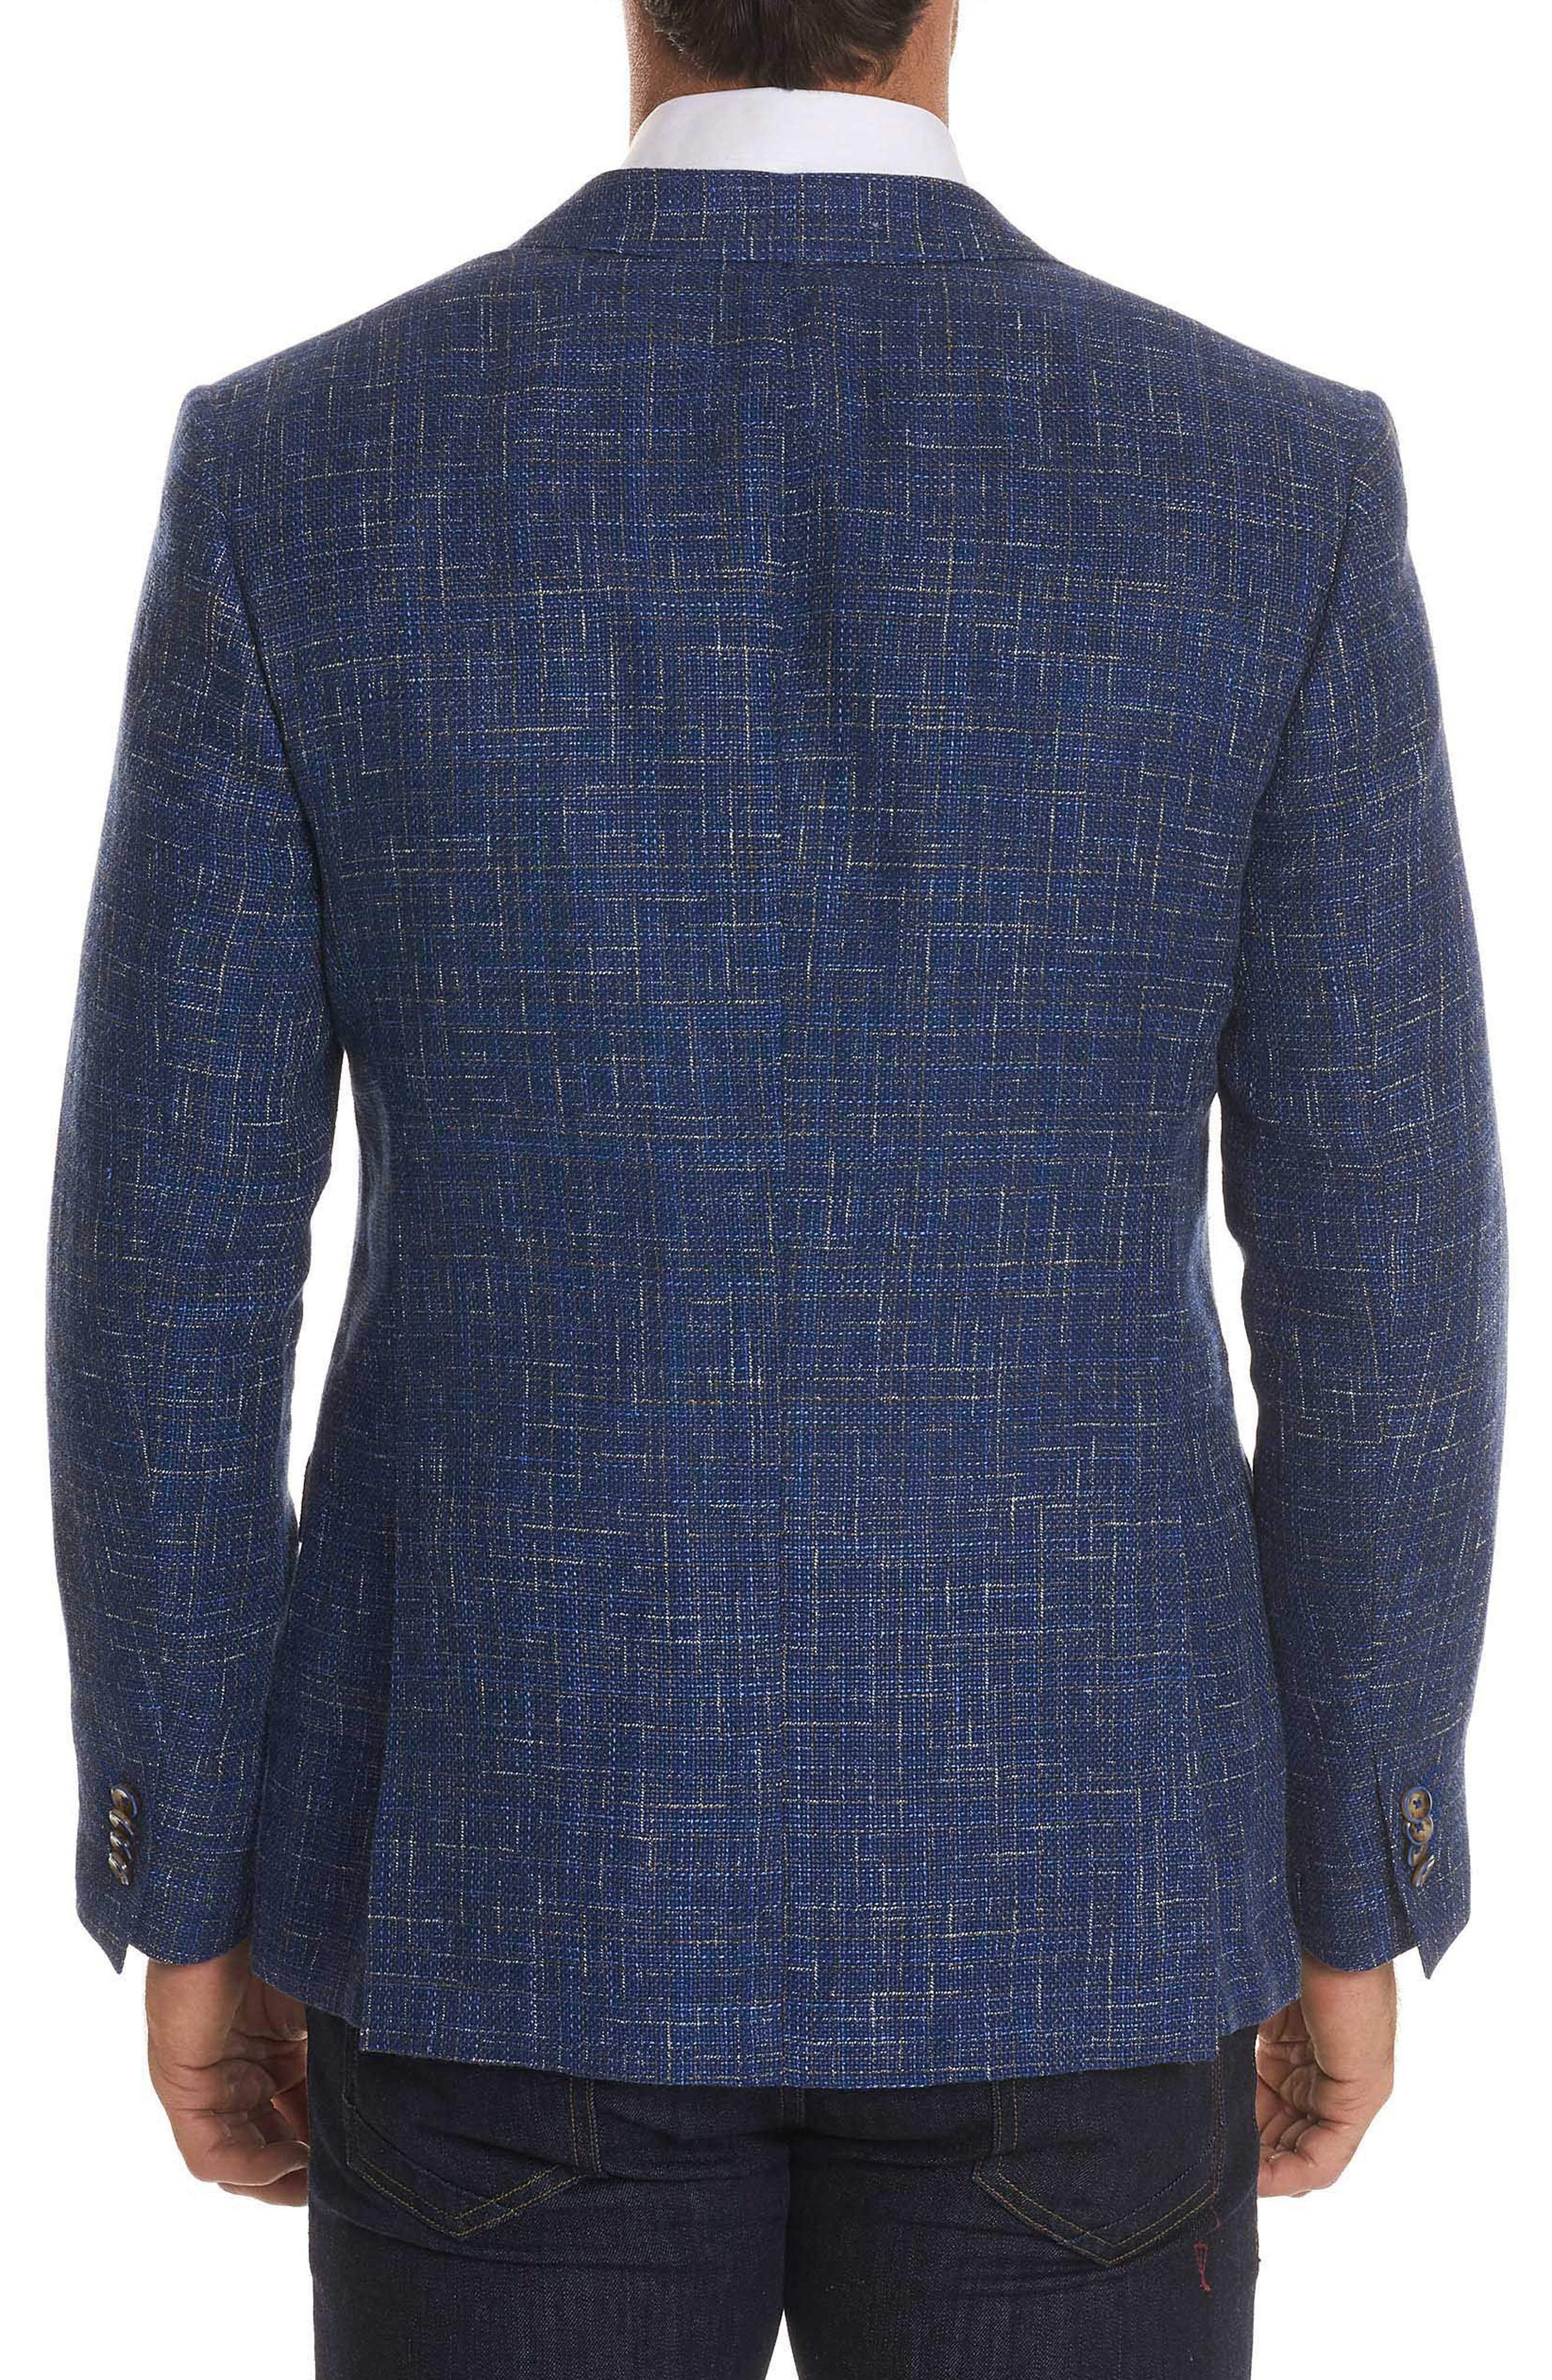 Jeremy Tailored Fit Sportcoat,                             Alternate thumbnail 2, color,                             BLUE